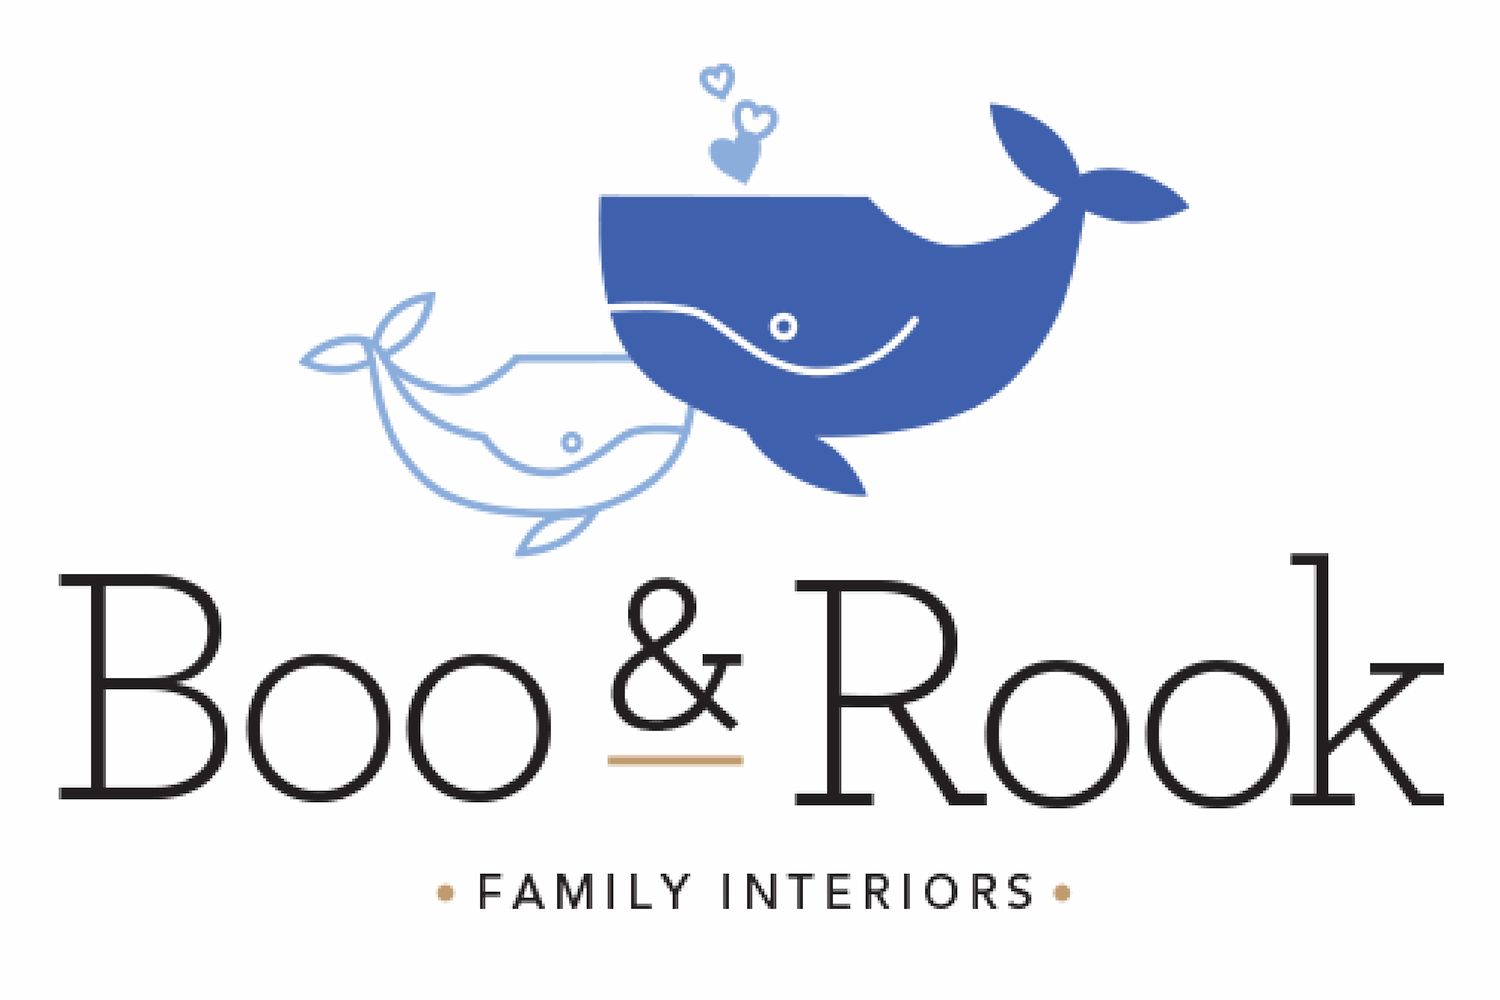 Boo & Rook Family Interiors Bridgewater Massachusetts